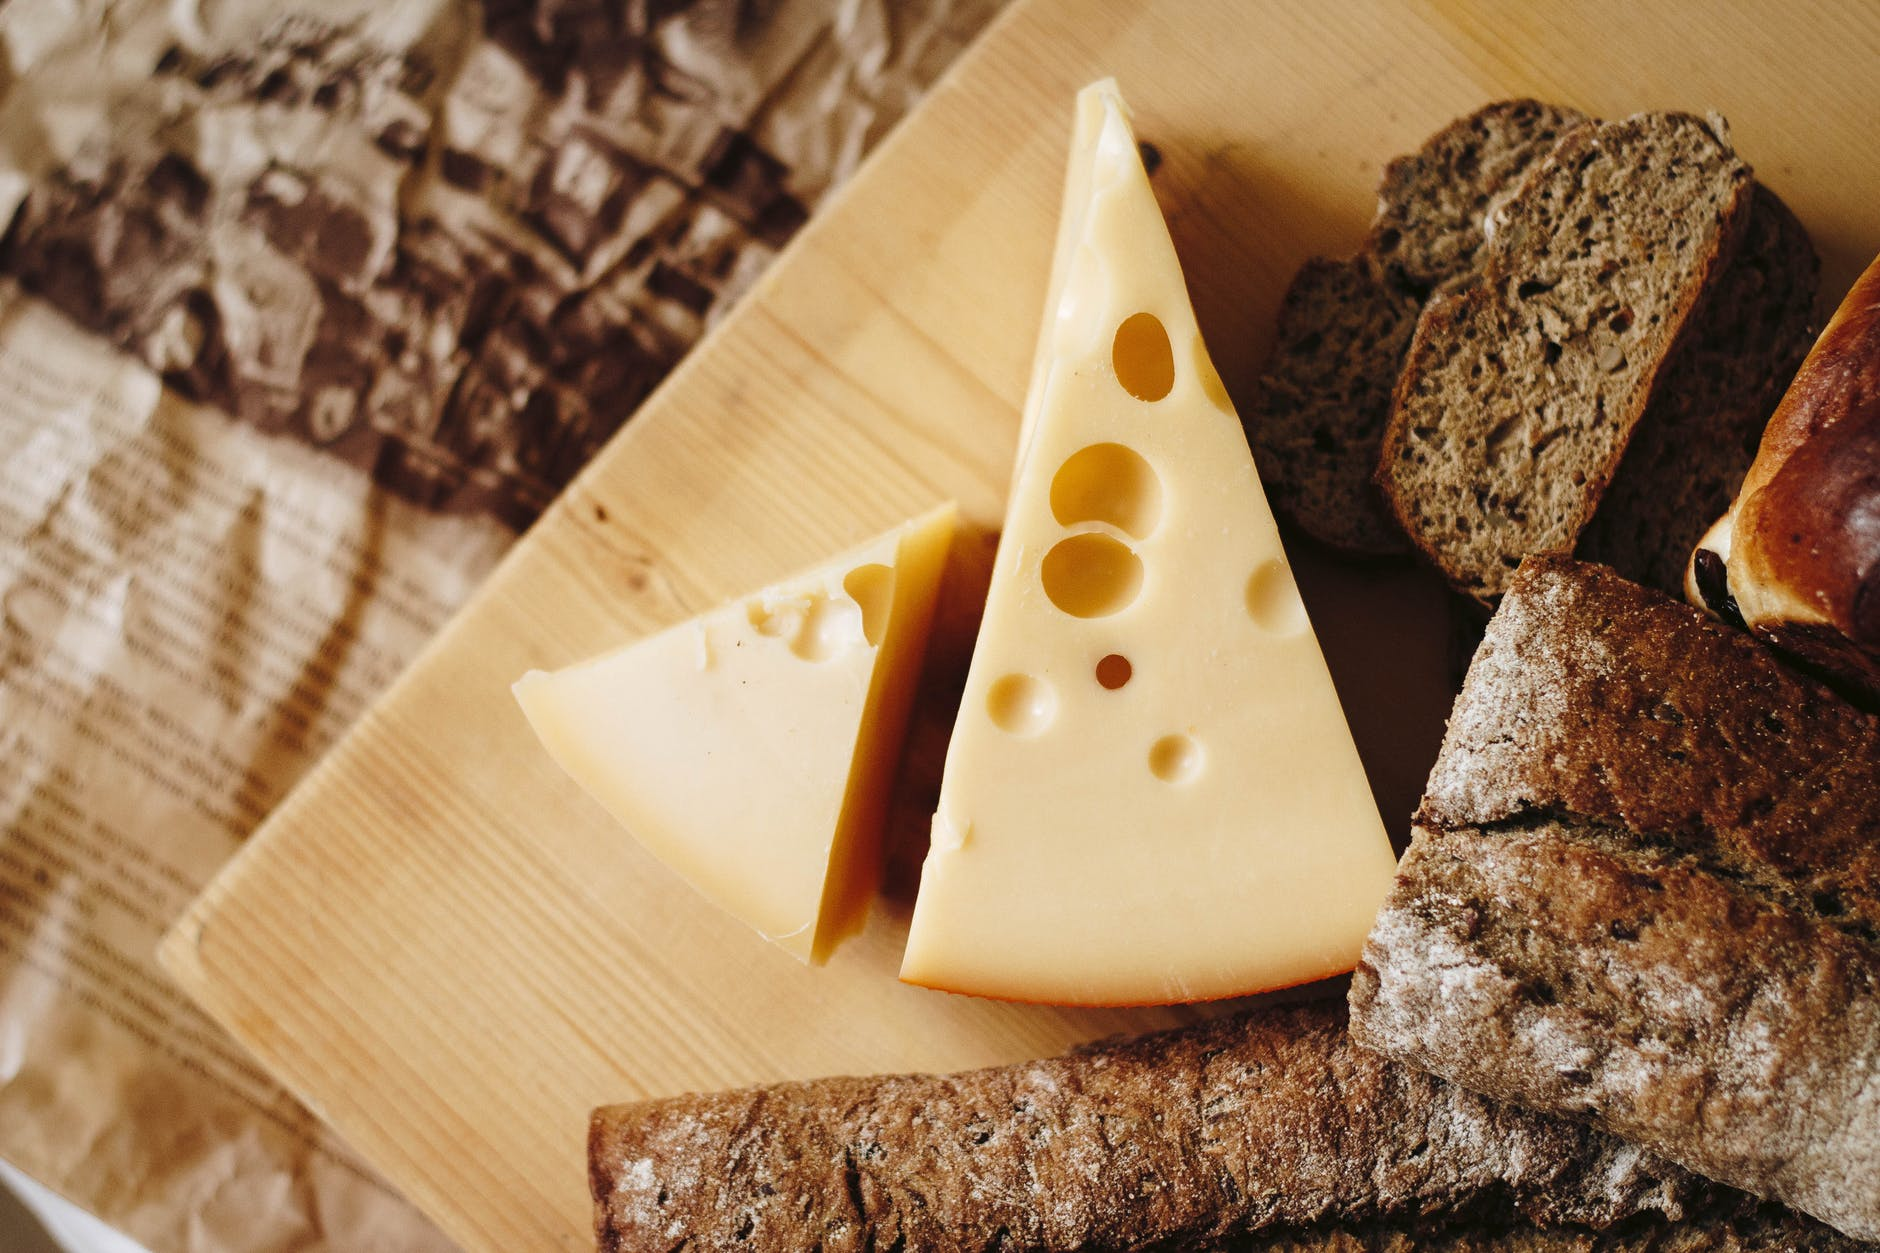 Mice in fact do not like cheese. In the 1500s, cheese could be found in almost every house, even that of the poor, with no other choices of food around, mice would eat the cheese.